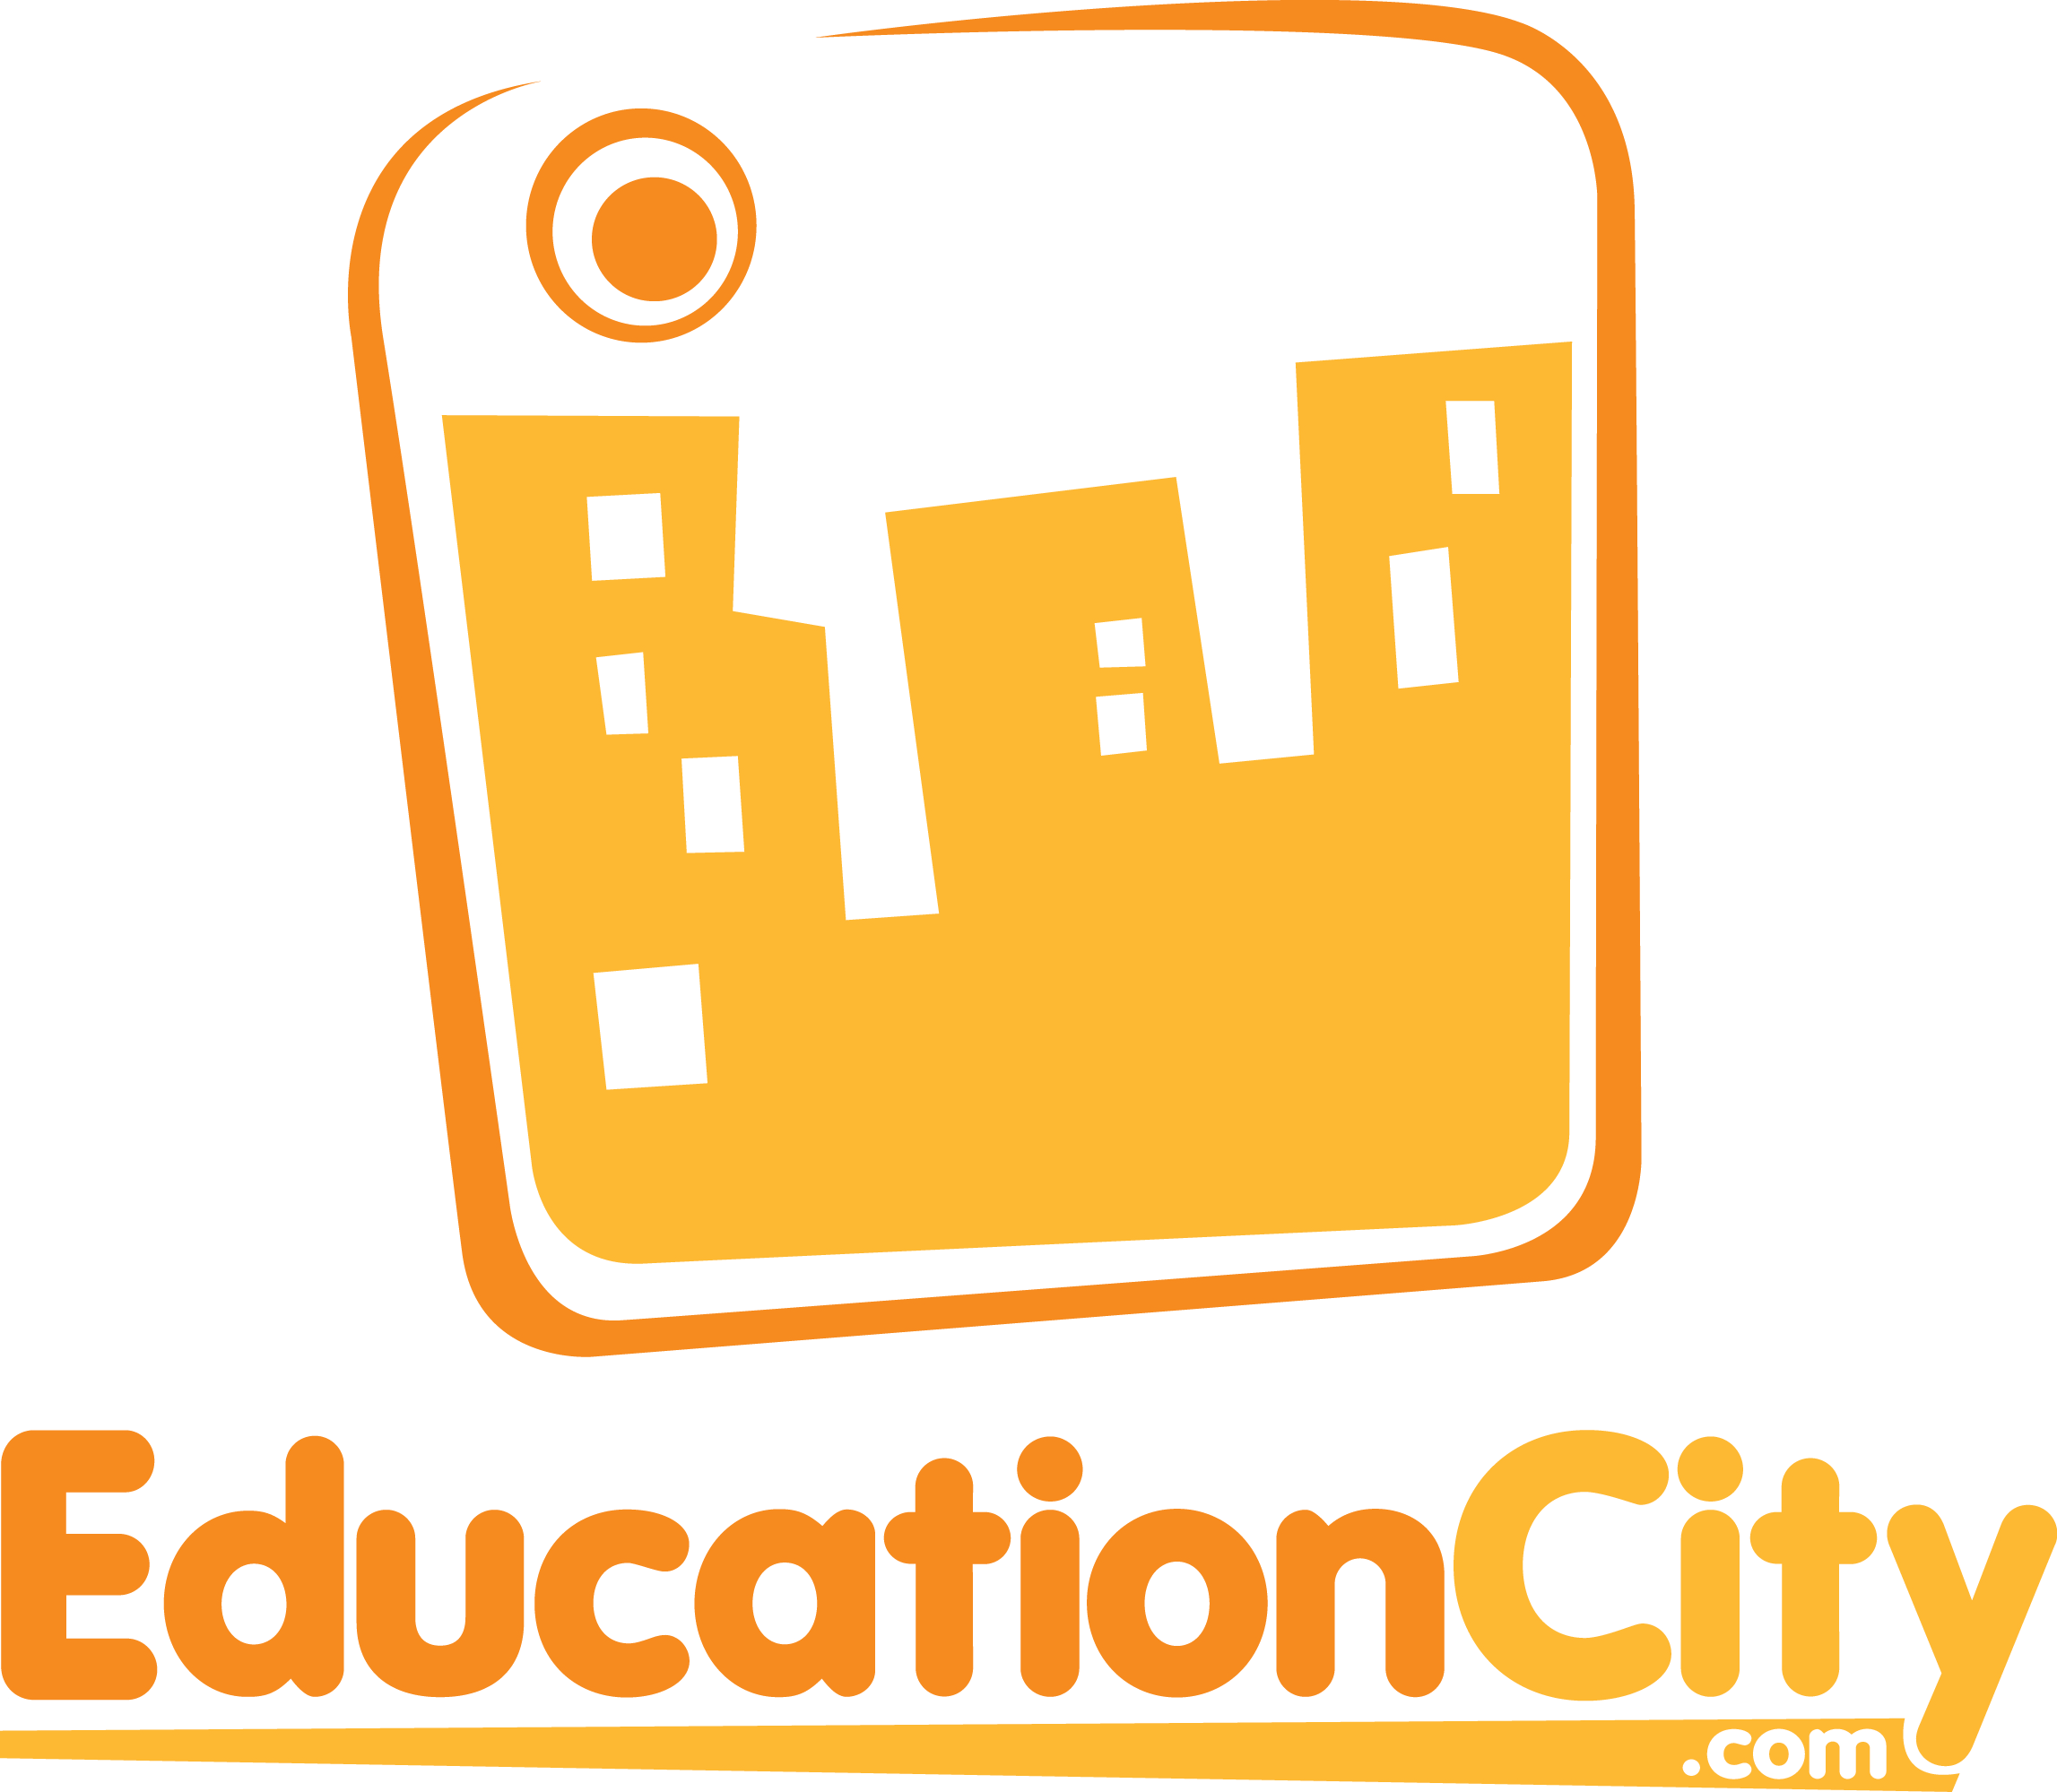 click to go to educationcity.com